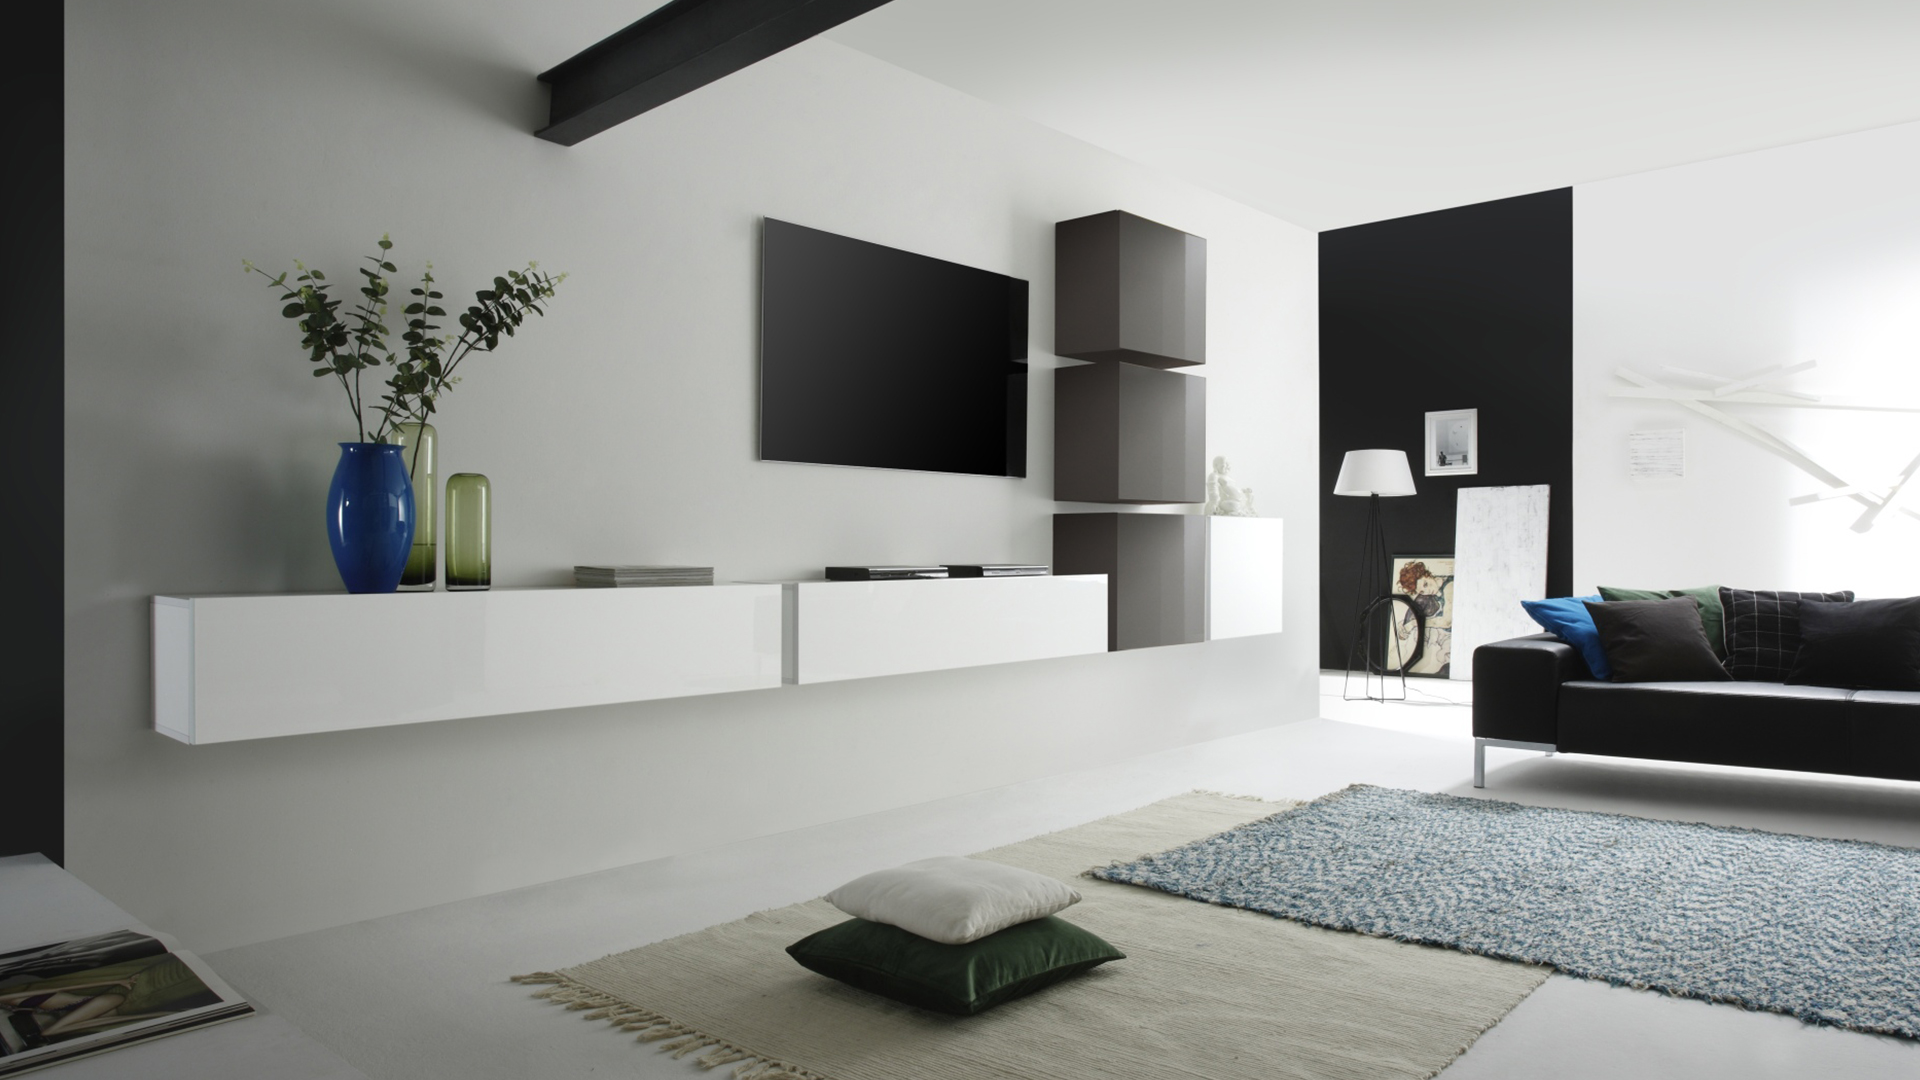 meuble tv a accrocher au mur mobilier design d coration. Black Bedroom Furniture Sets. Home Design Ideas